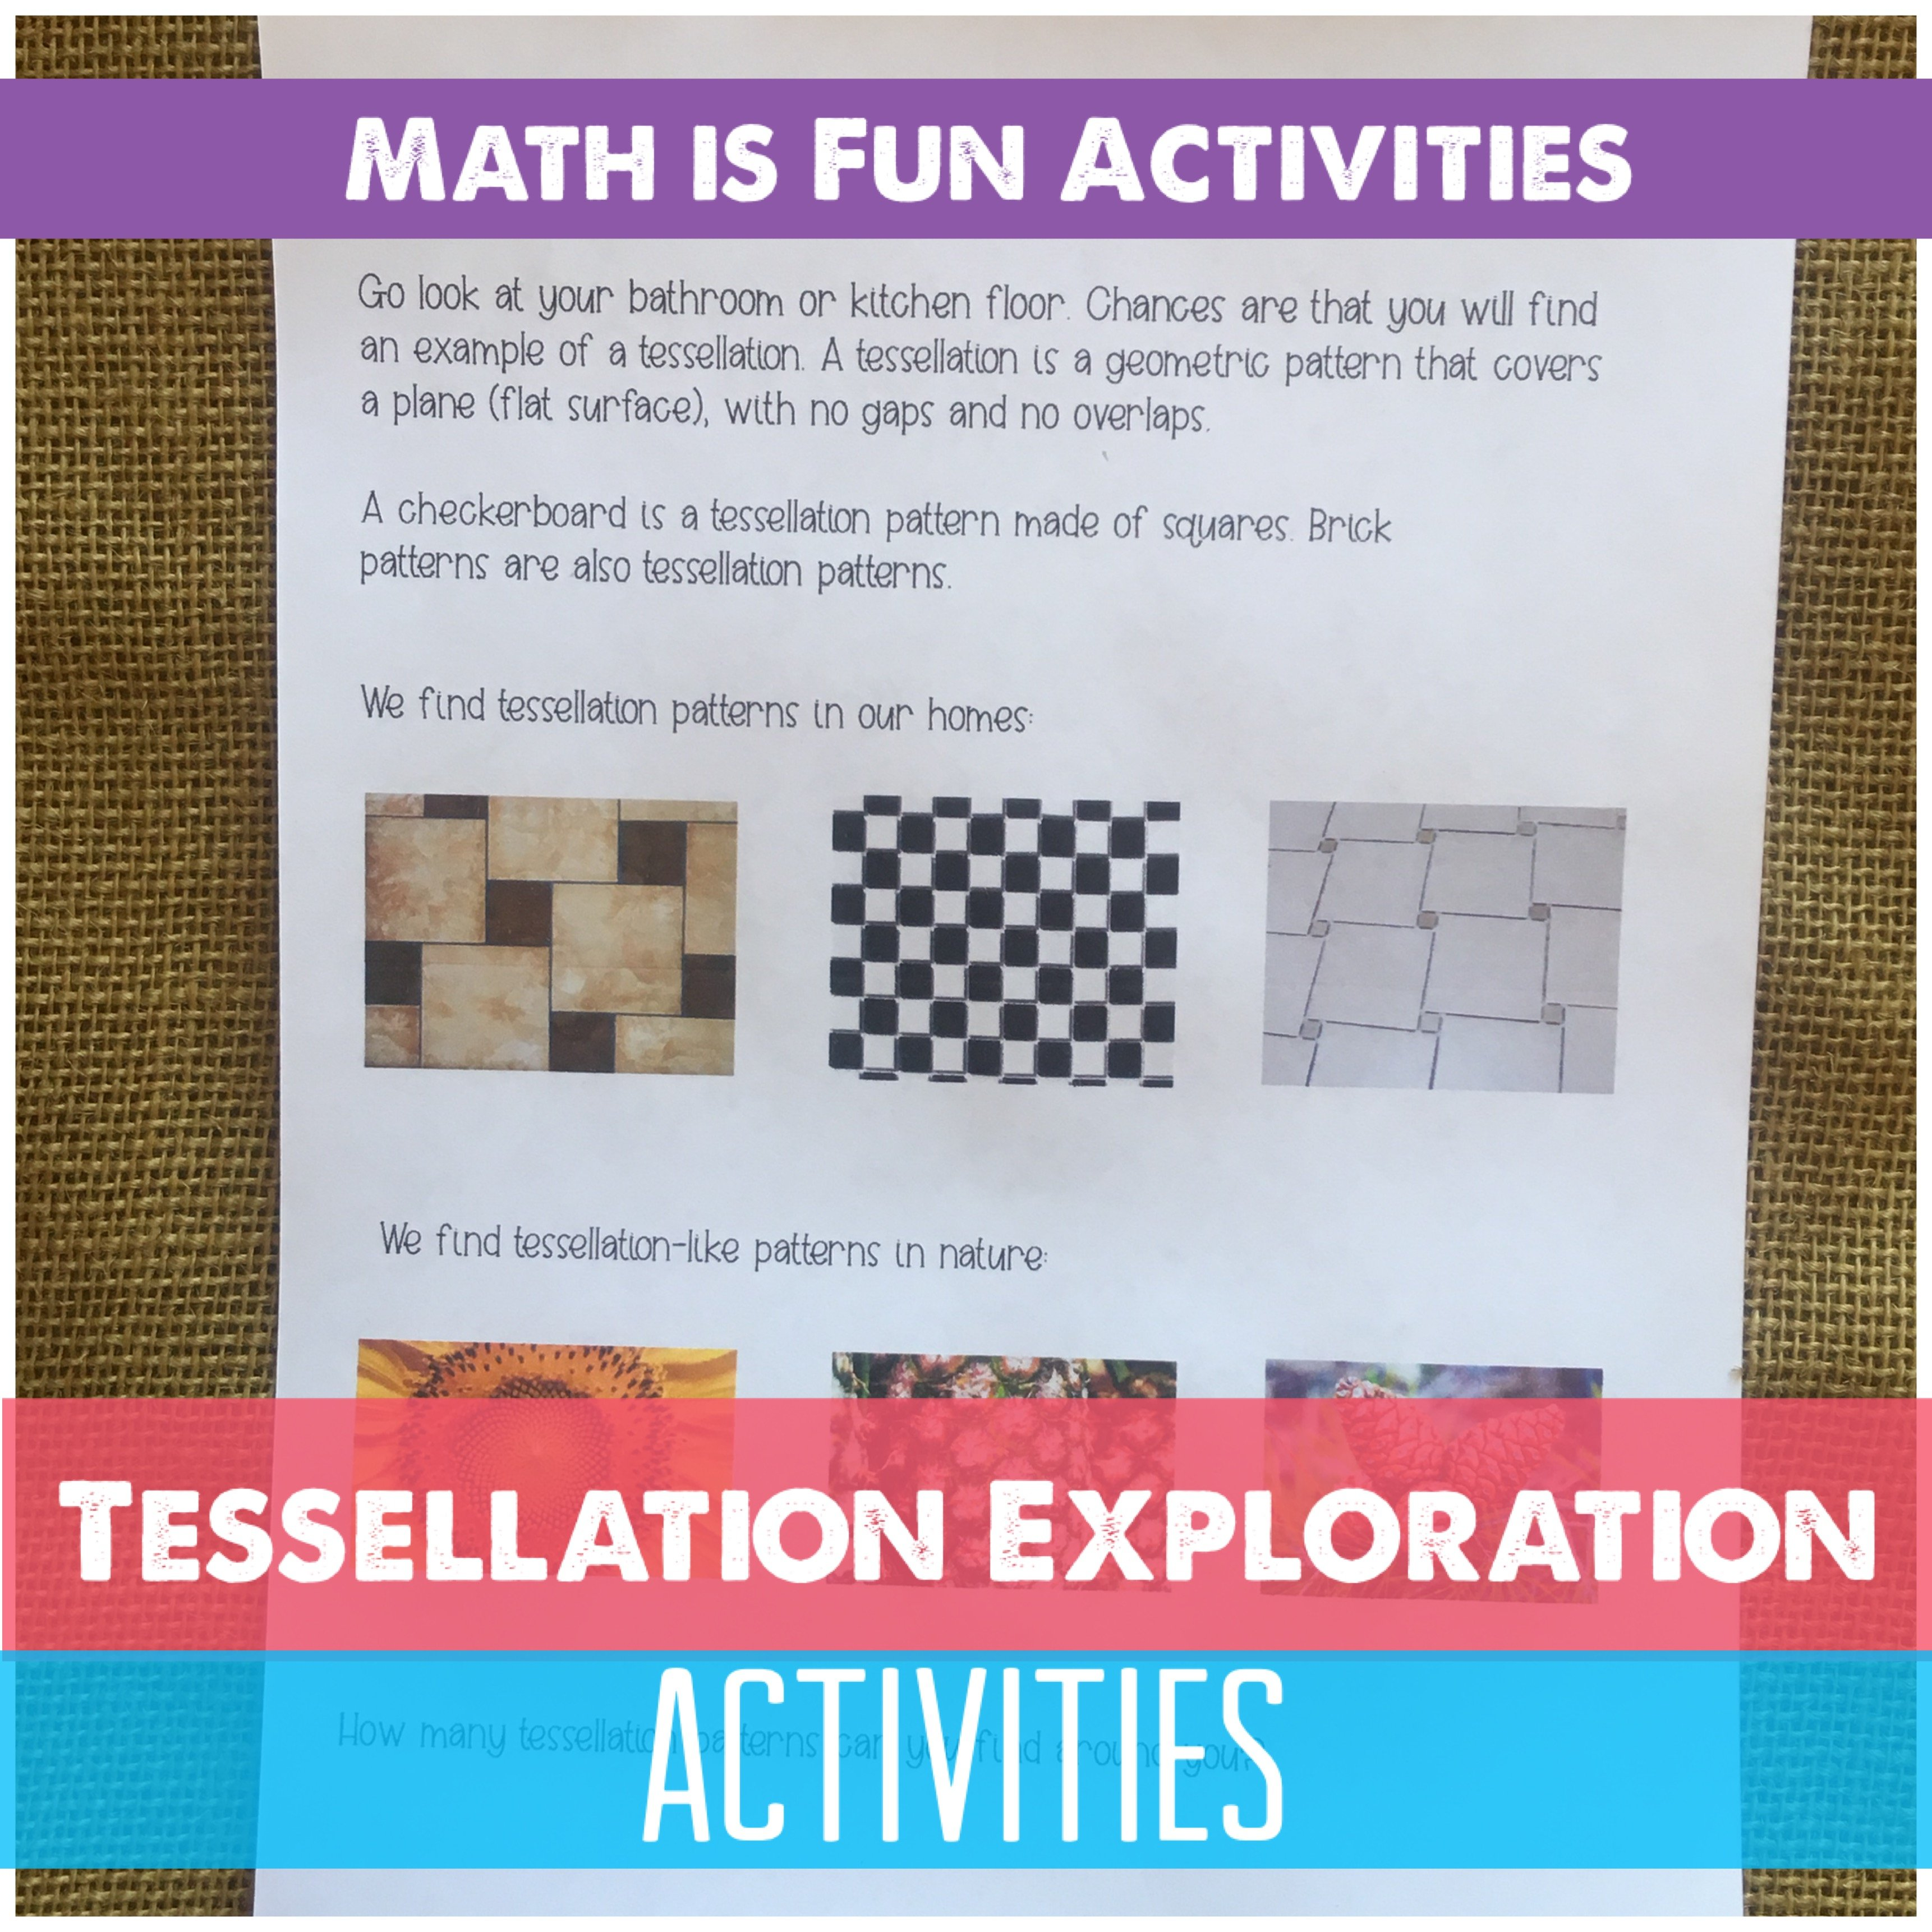 MATHCamp 2018 Tessellation explorations for the whole family. Learning about translation, rotation and reflection while creating tessellations.